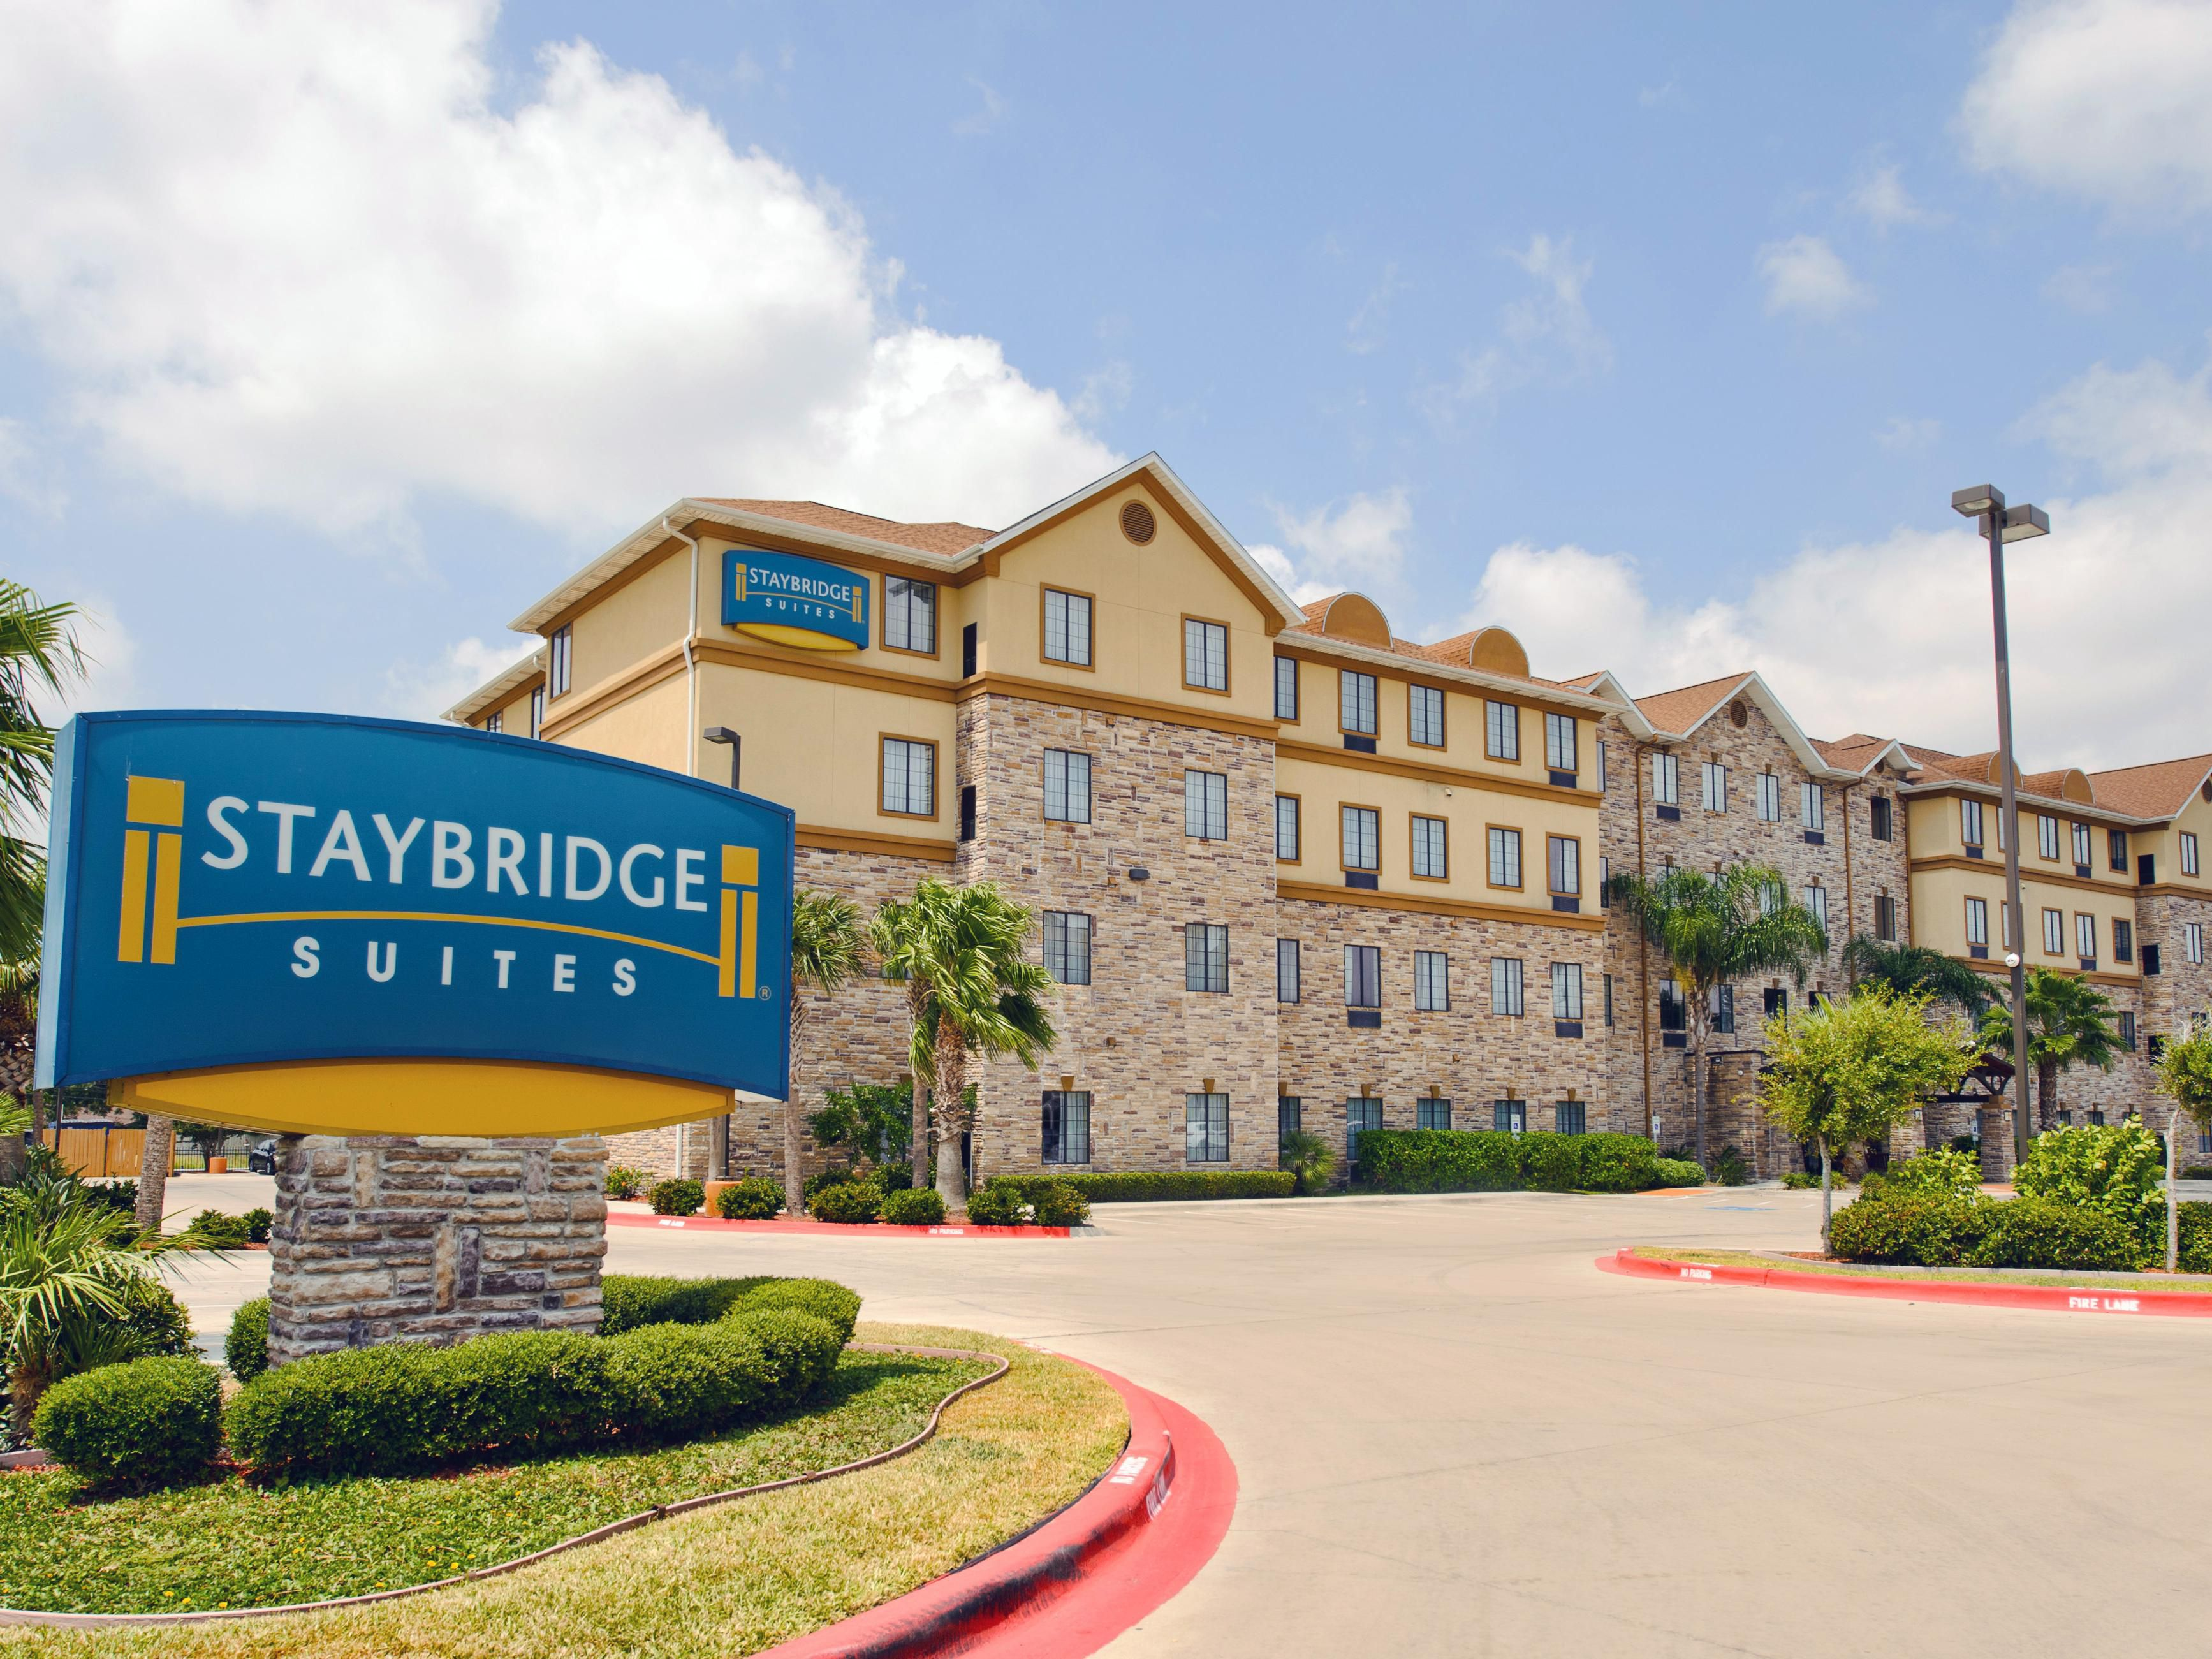 Staybridge Suites Corpus Christi Extended Stay Hotel In